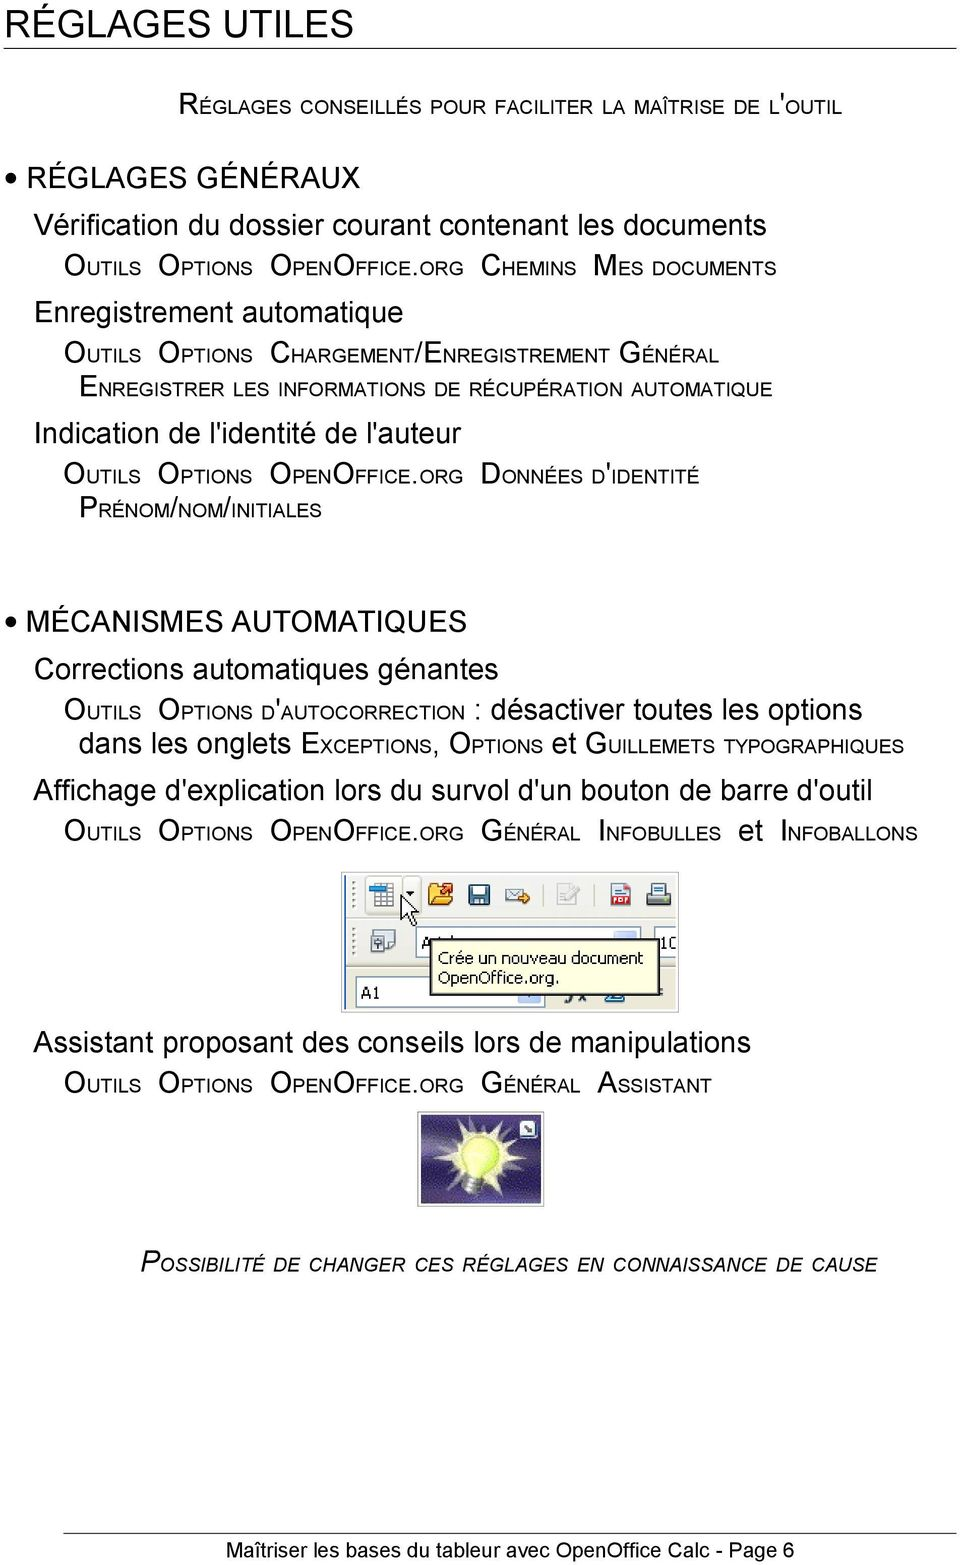 OUTILS OPTIONS OPENOFFICE.